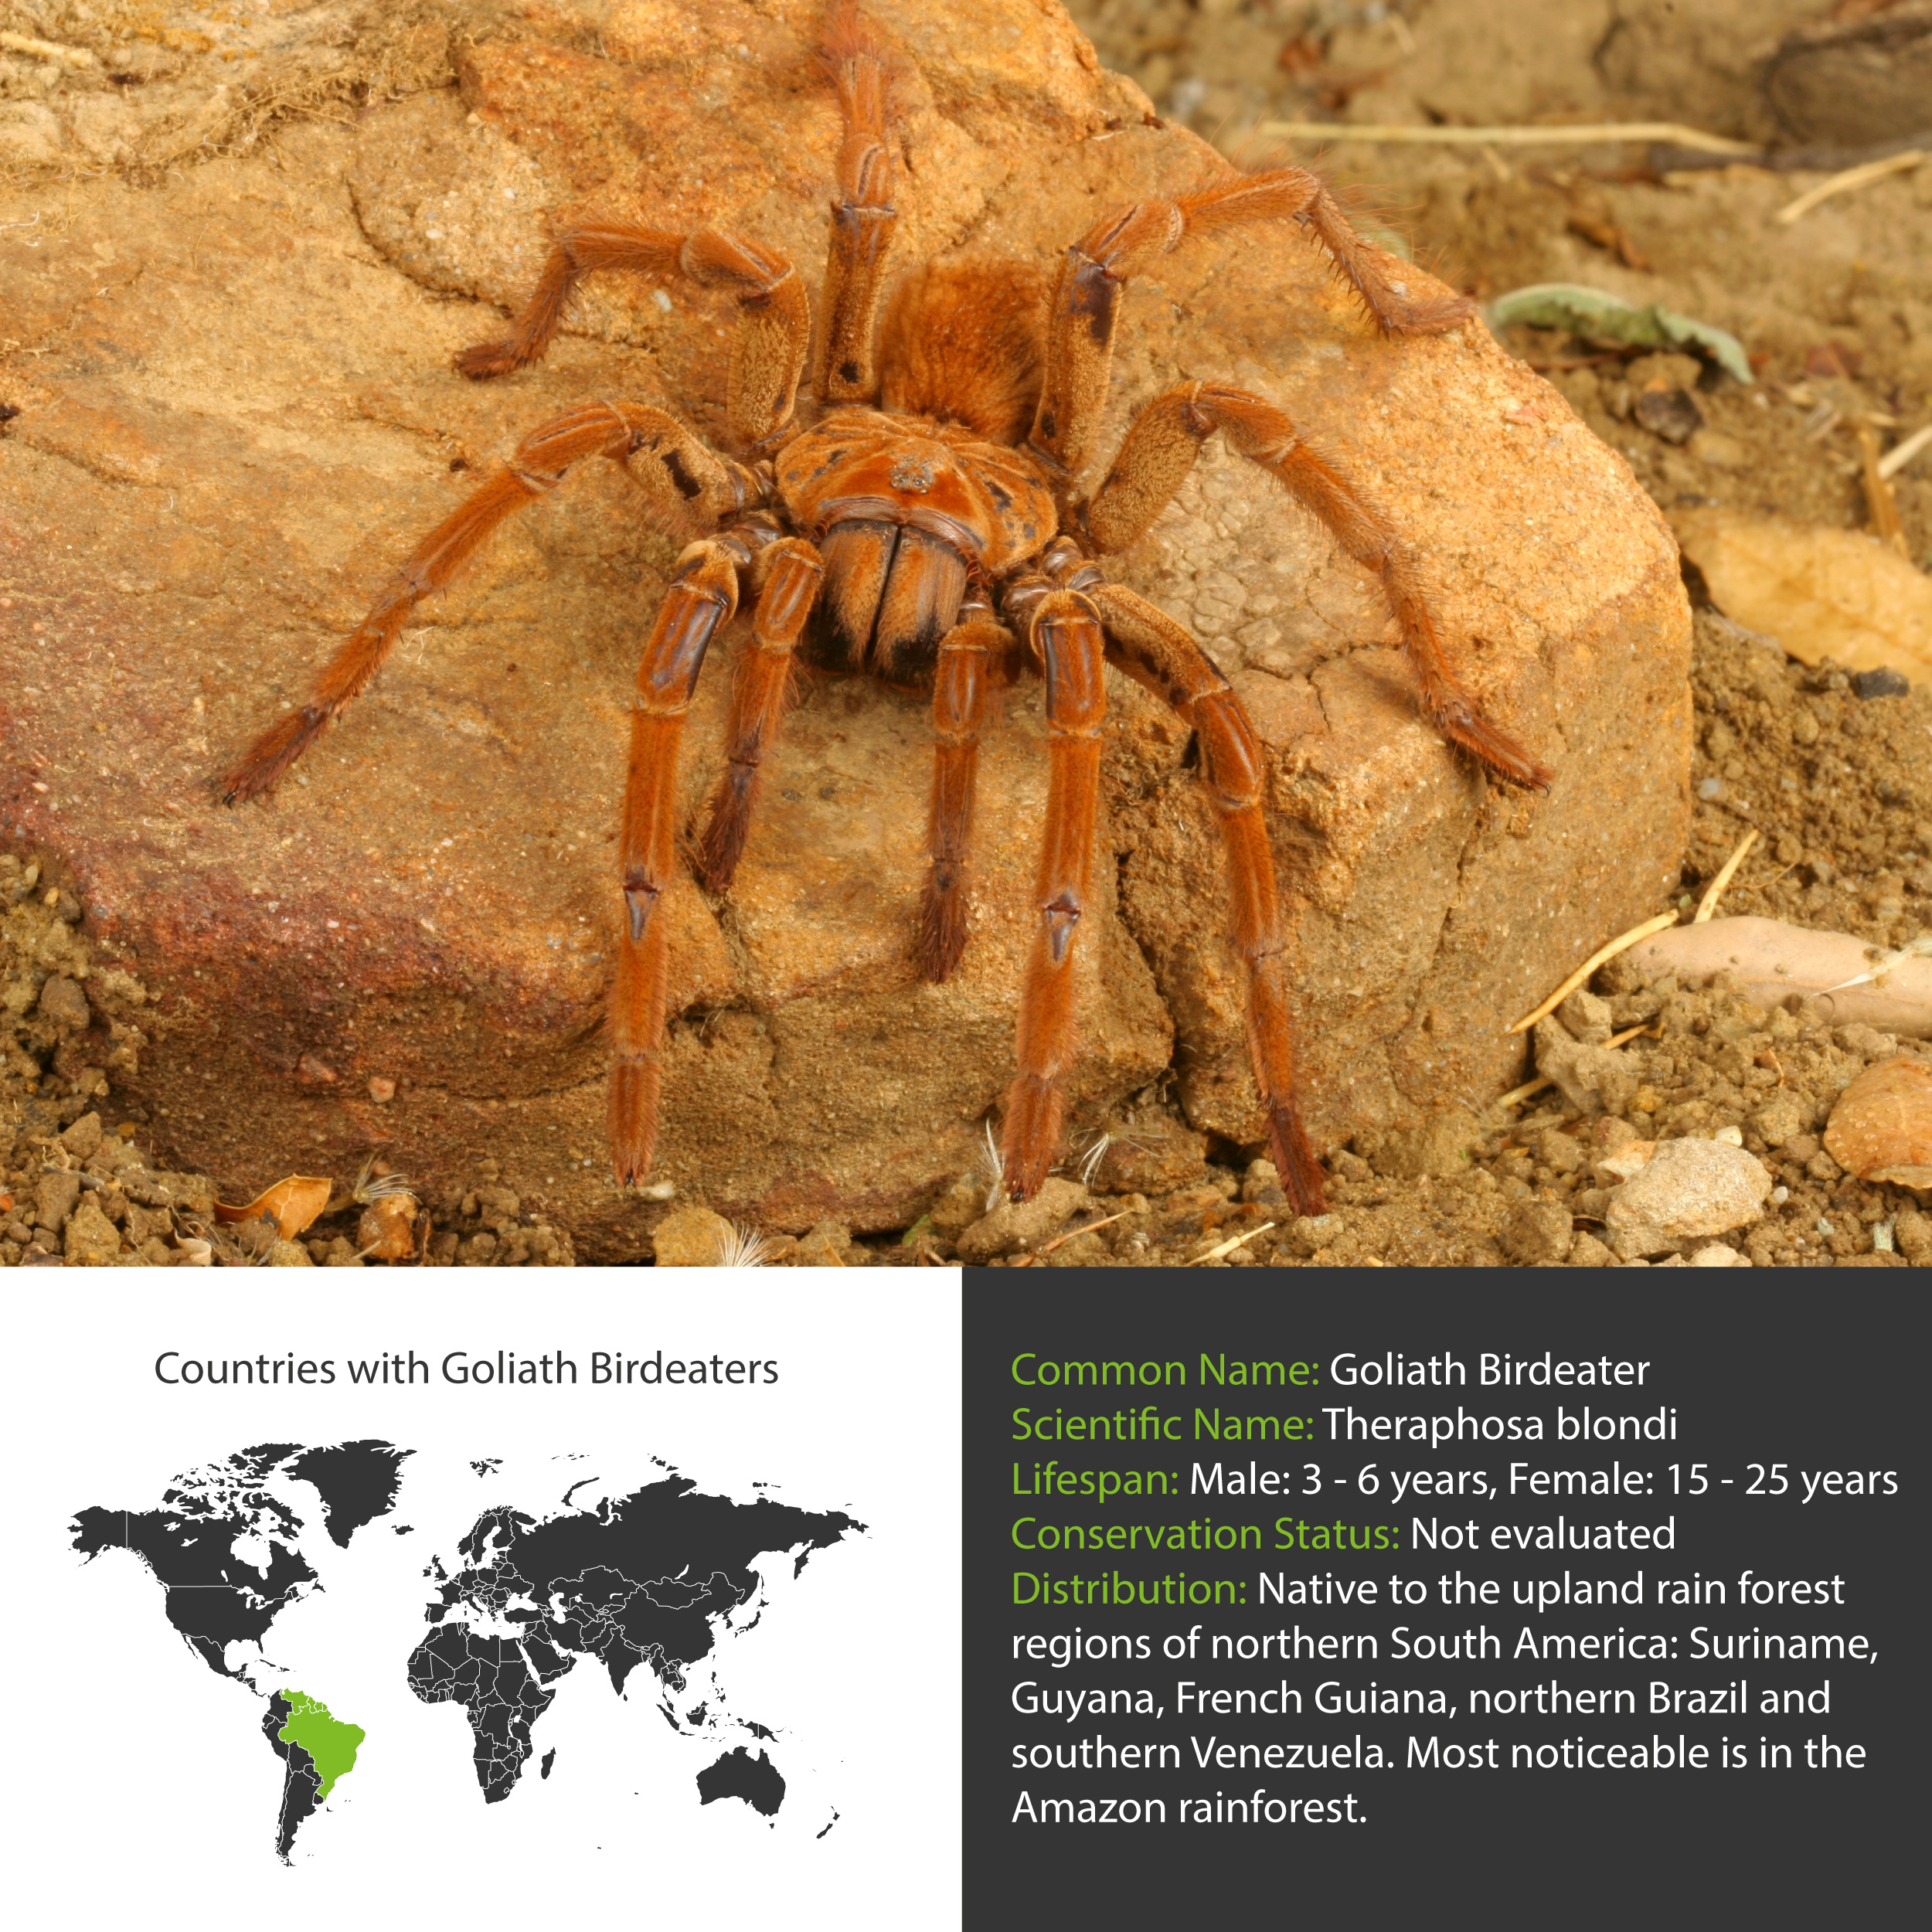 Goliath Birdeater Facts